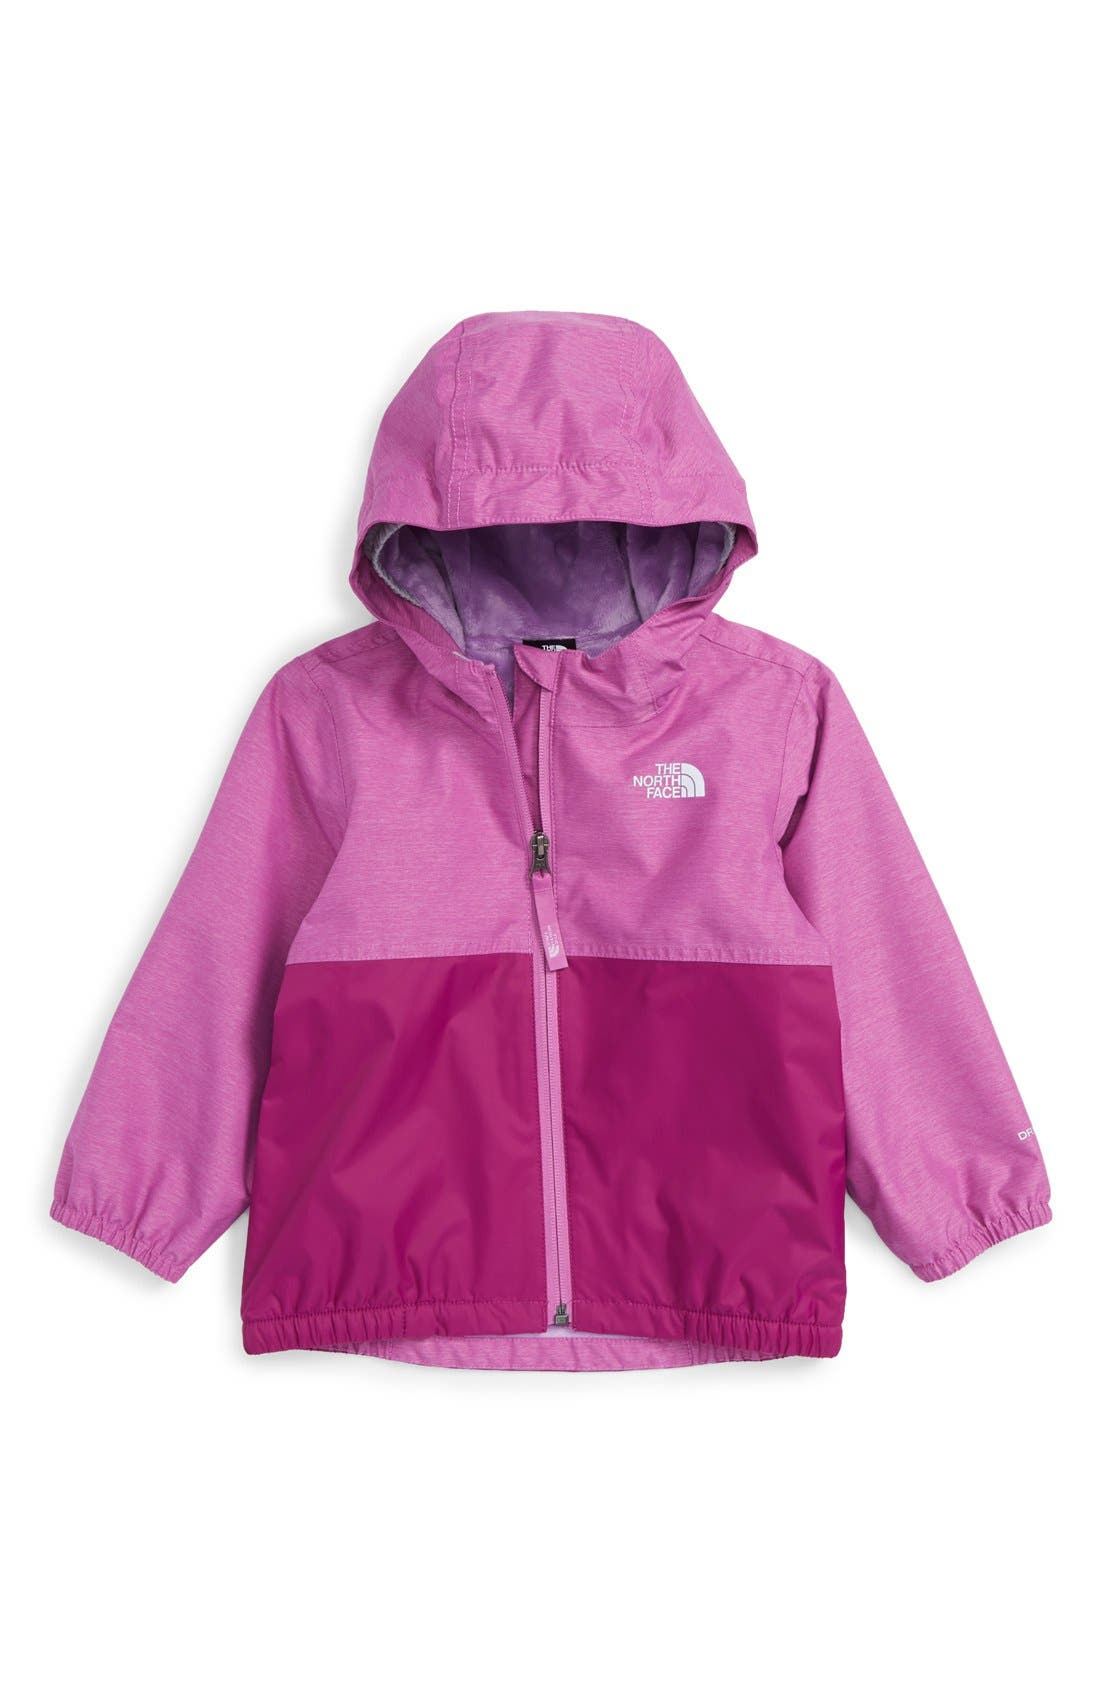 Main Image - The North Face 'Warm Storm' Hooded Waterproof Jacket (Baby Girls)